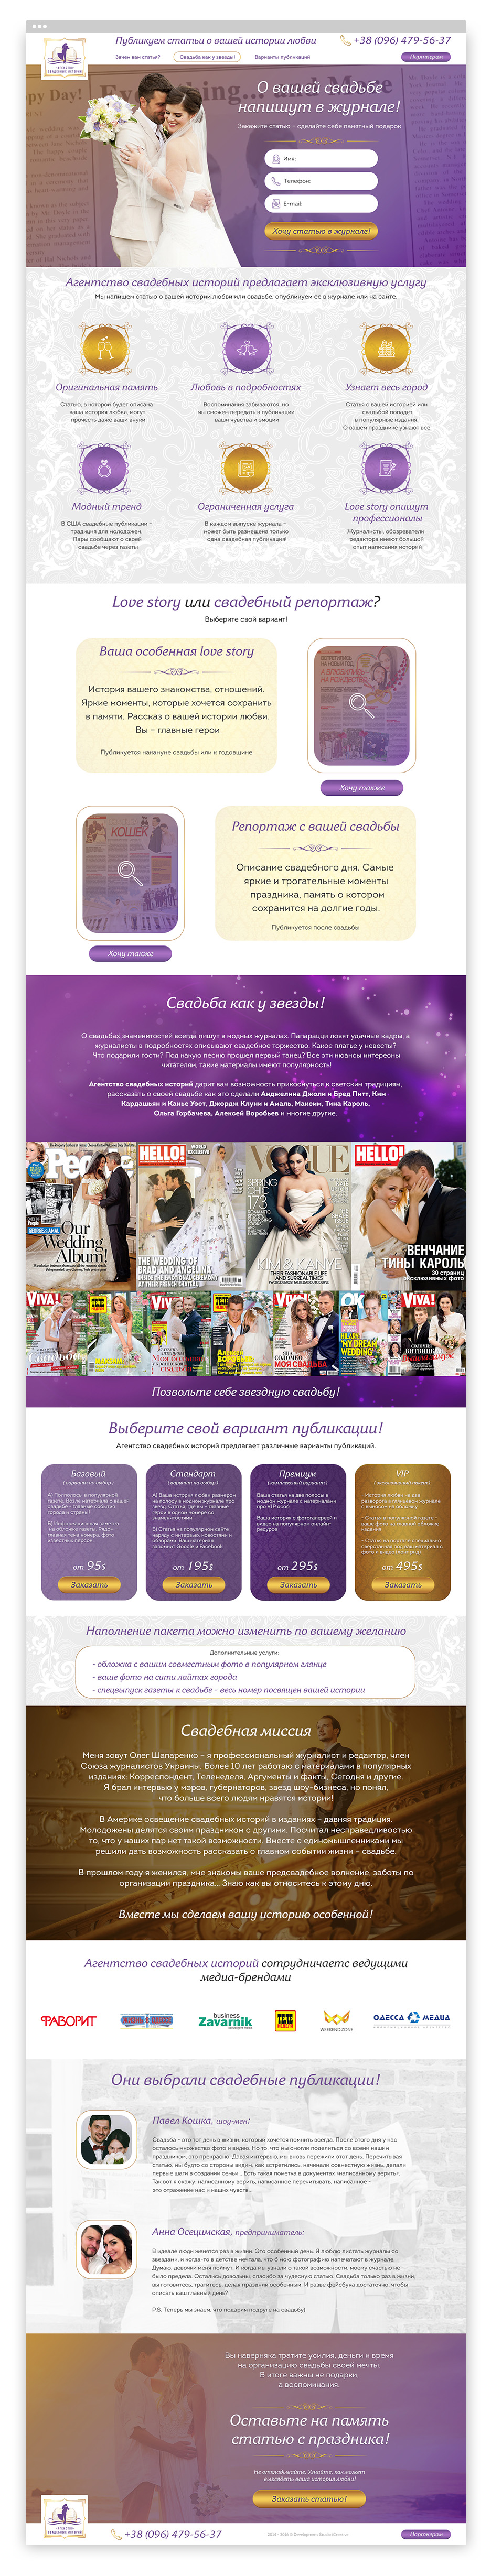 icreative-com-ua_wedding